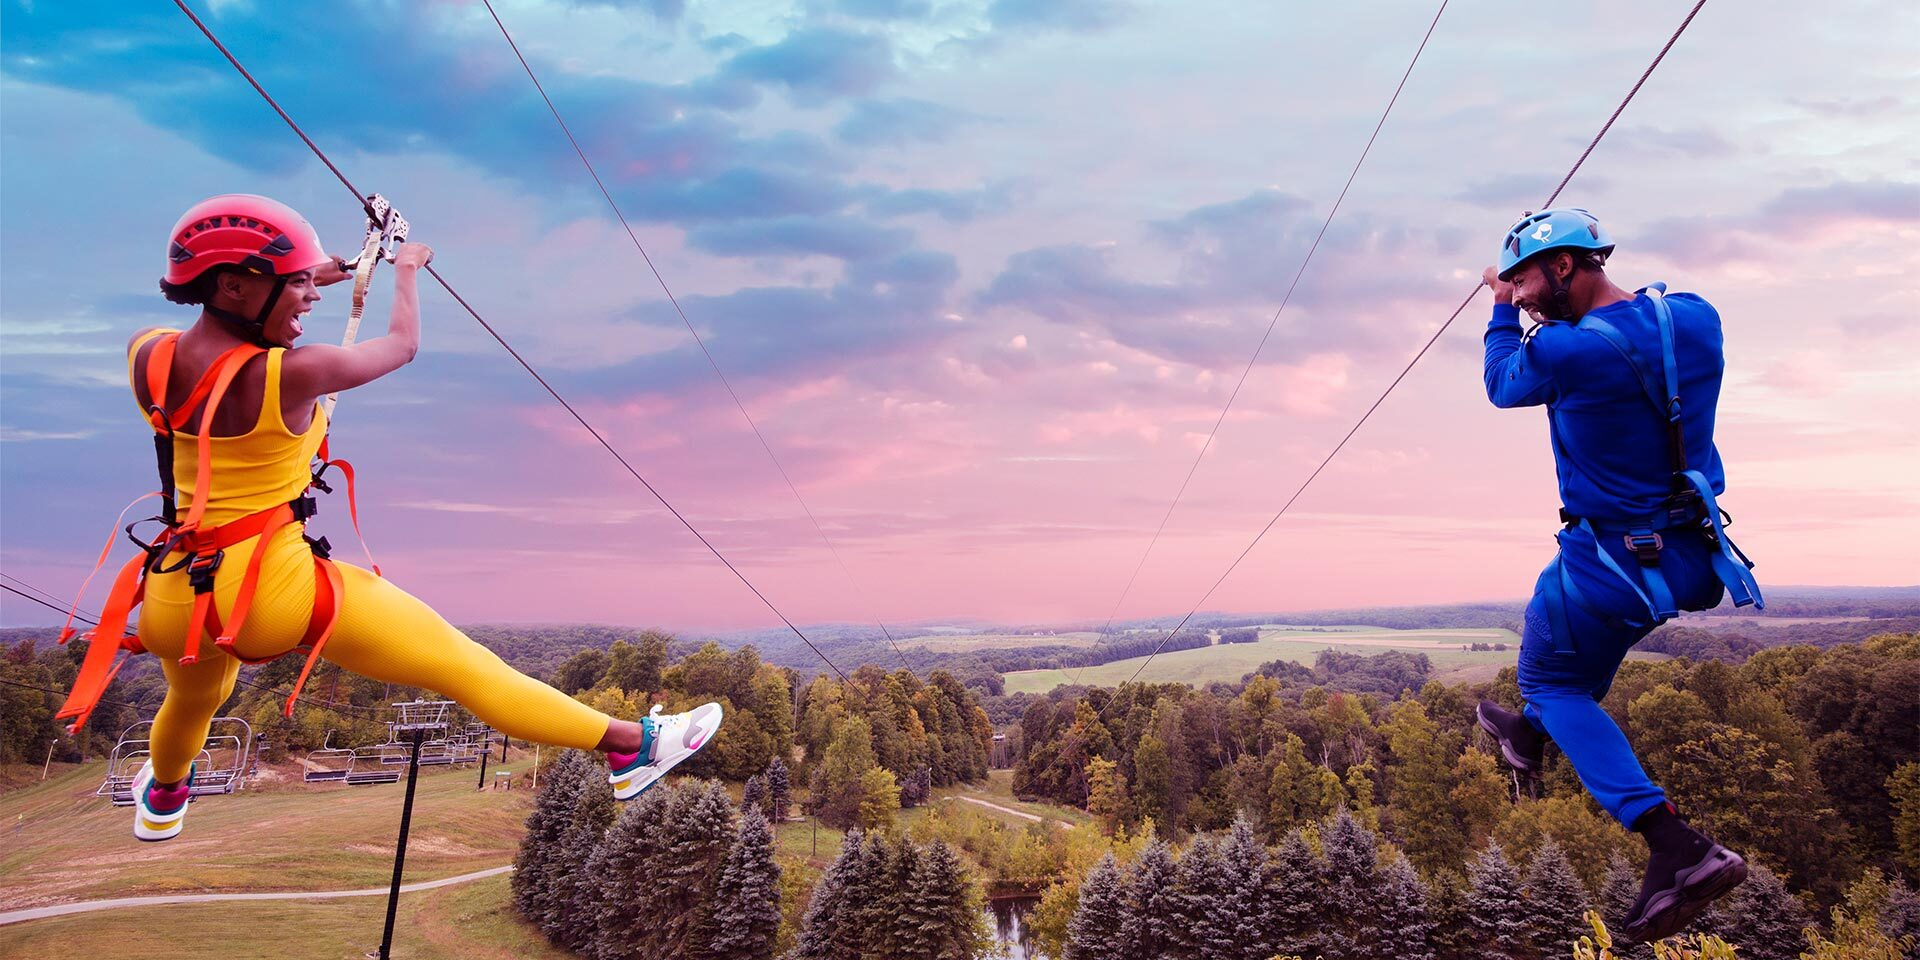 man and woman ziplining parallel to each other